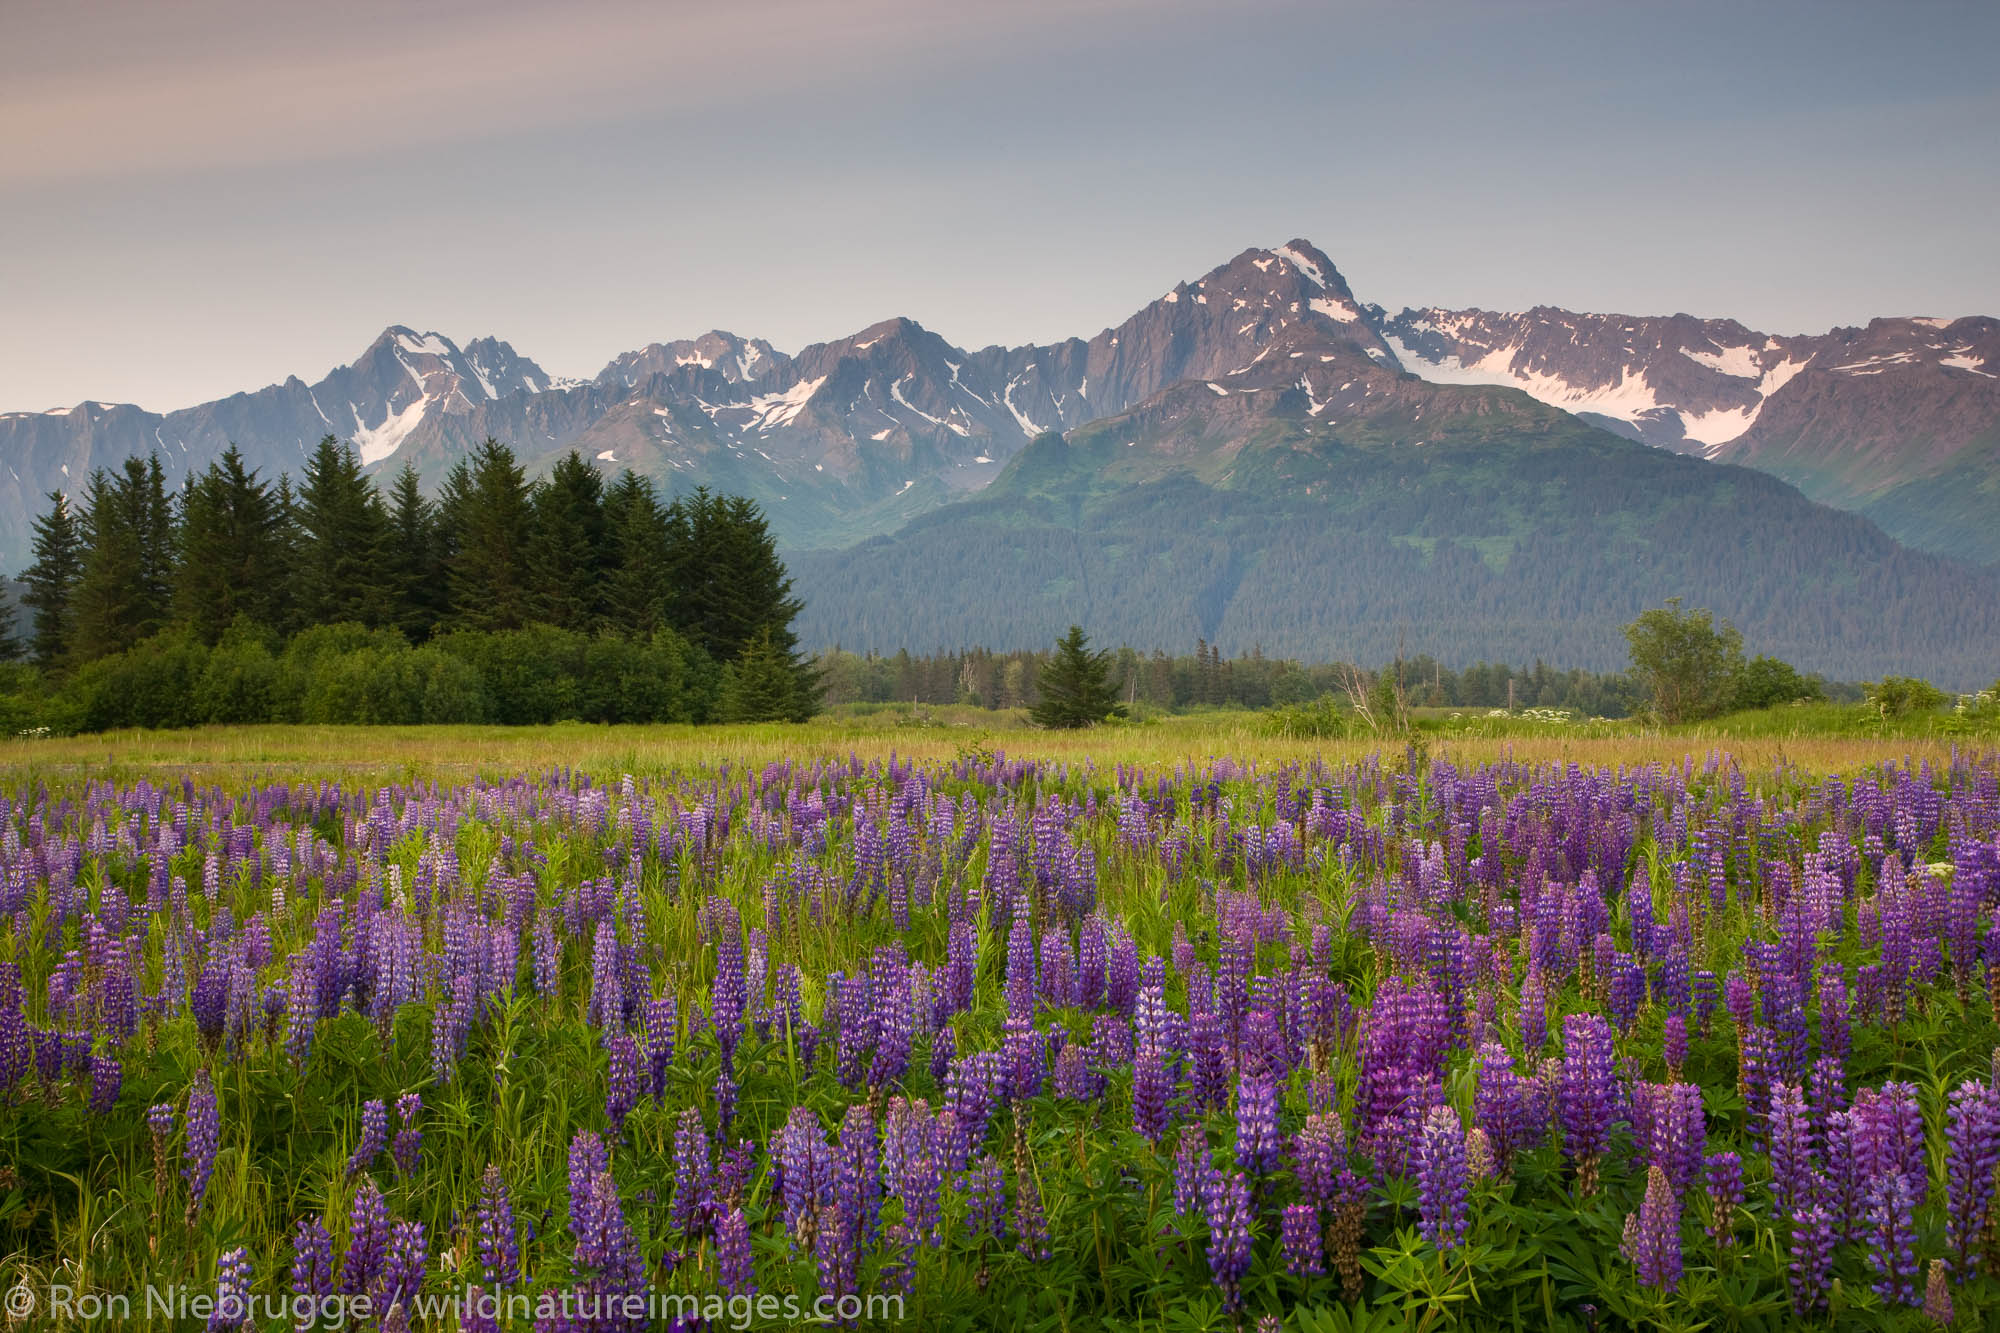 A field of lupine and Mt. Alice, part of the Chugach National Forest, from Seward, Alaska.